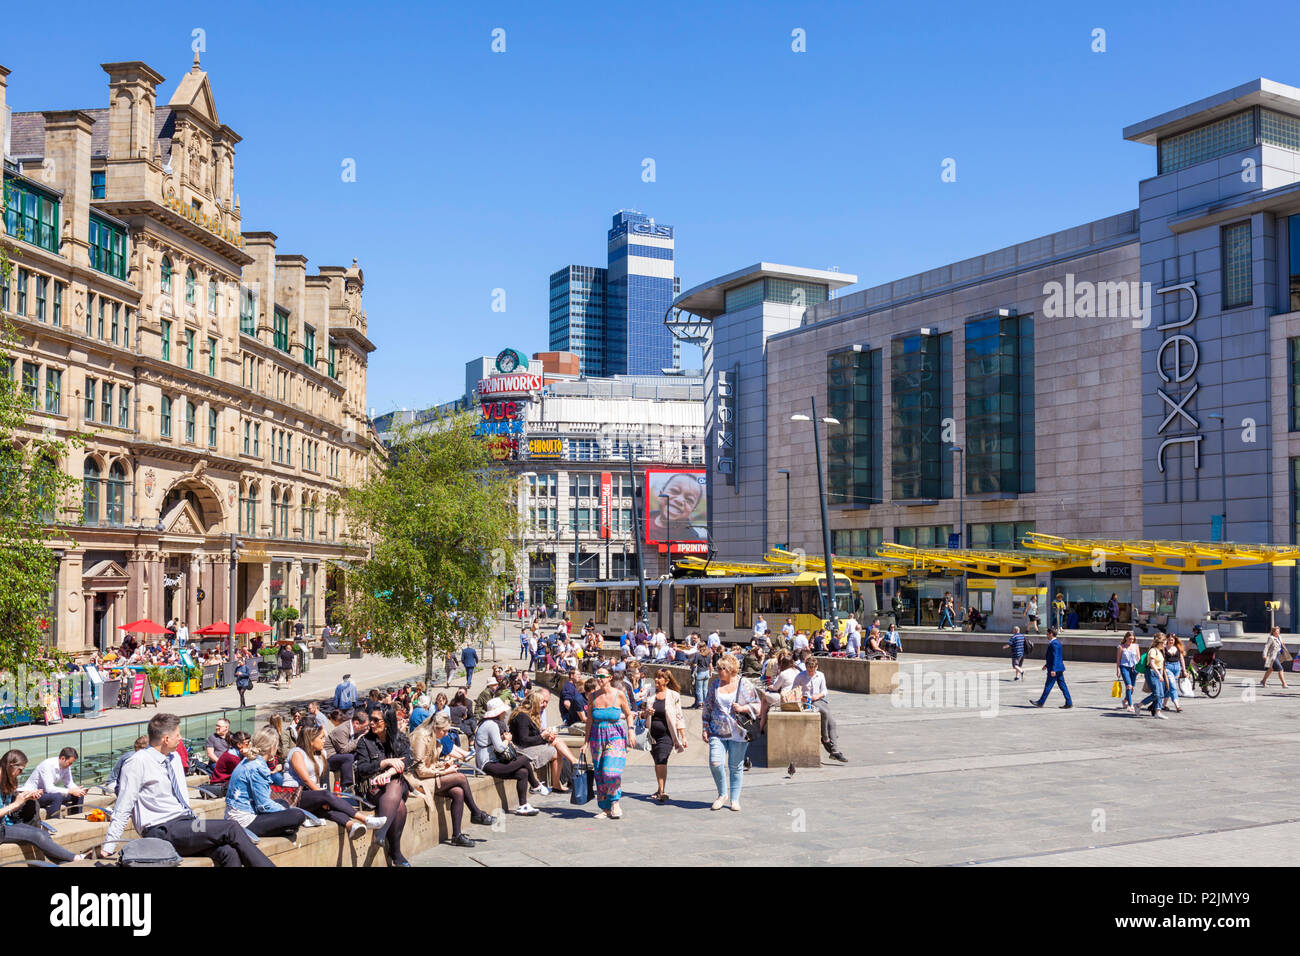 England Manchester England Manchester City centre city center shoppers outside Next store exchange square manchester Arndale centre Manchester uk - Stock Image